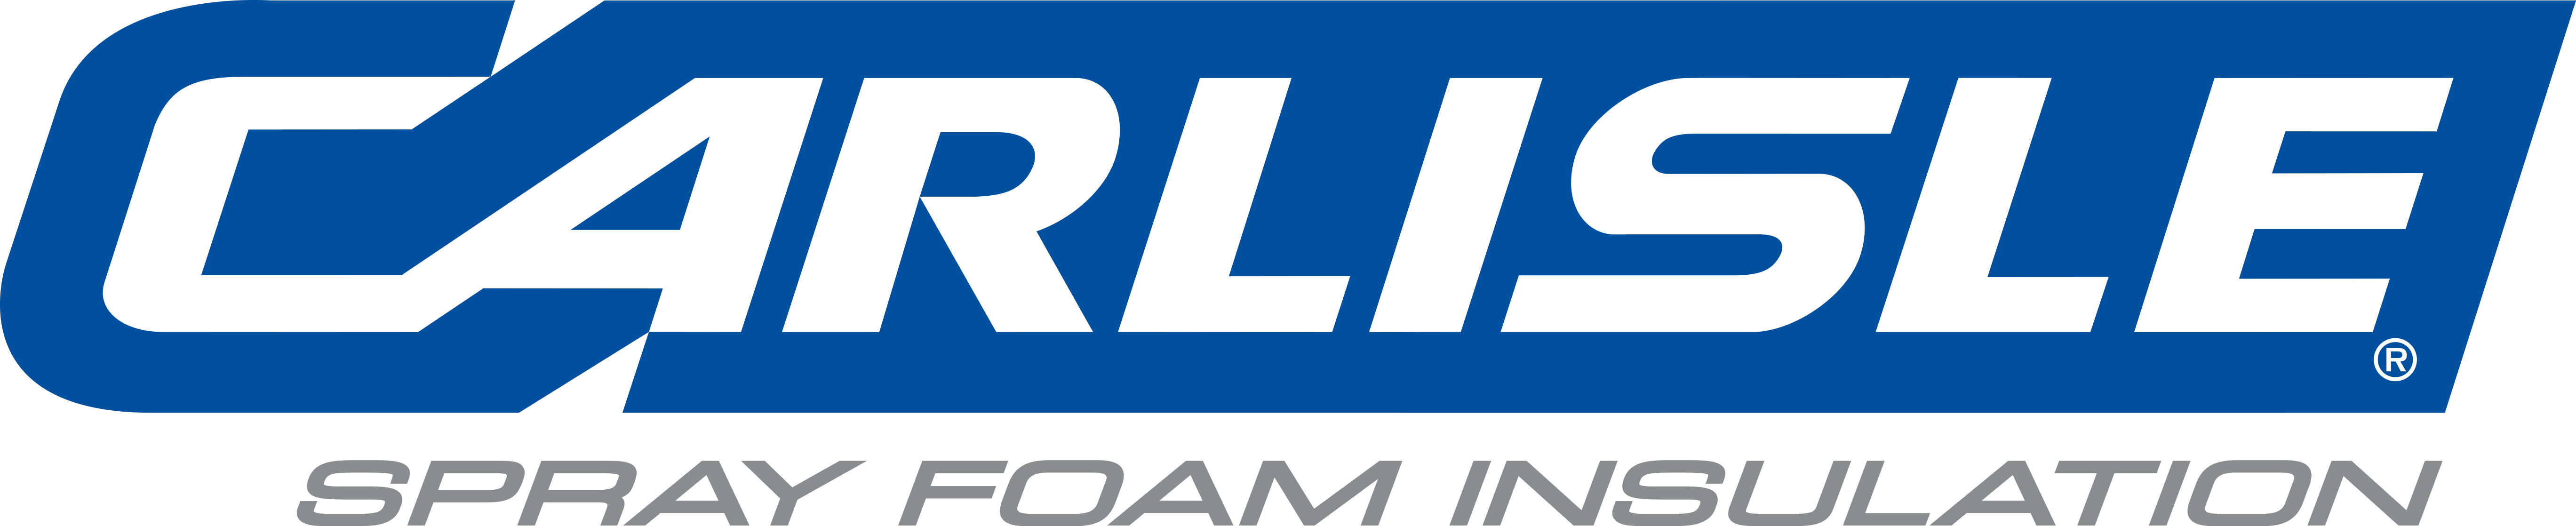 Carlisle Spray Foam Insulation Logo